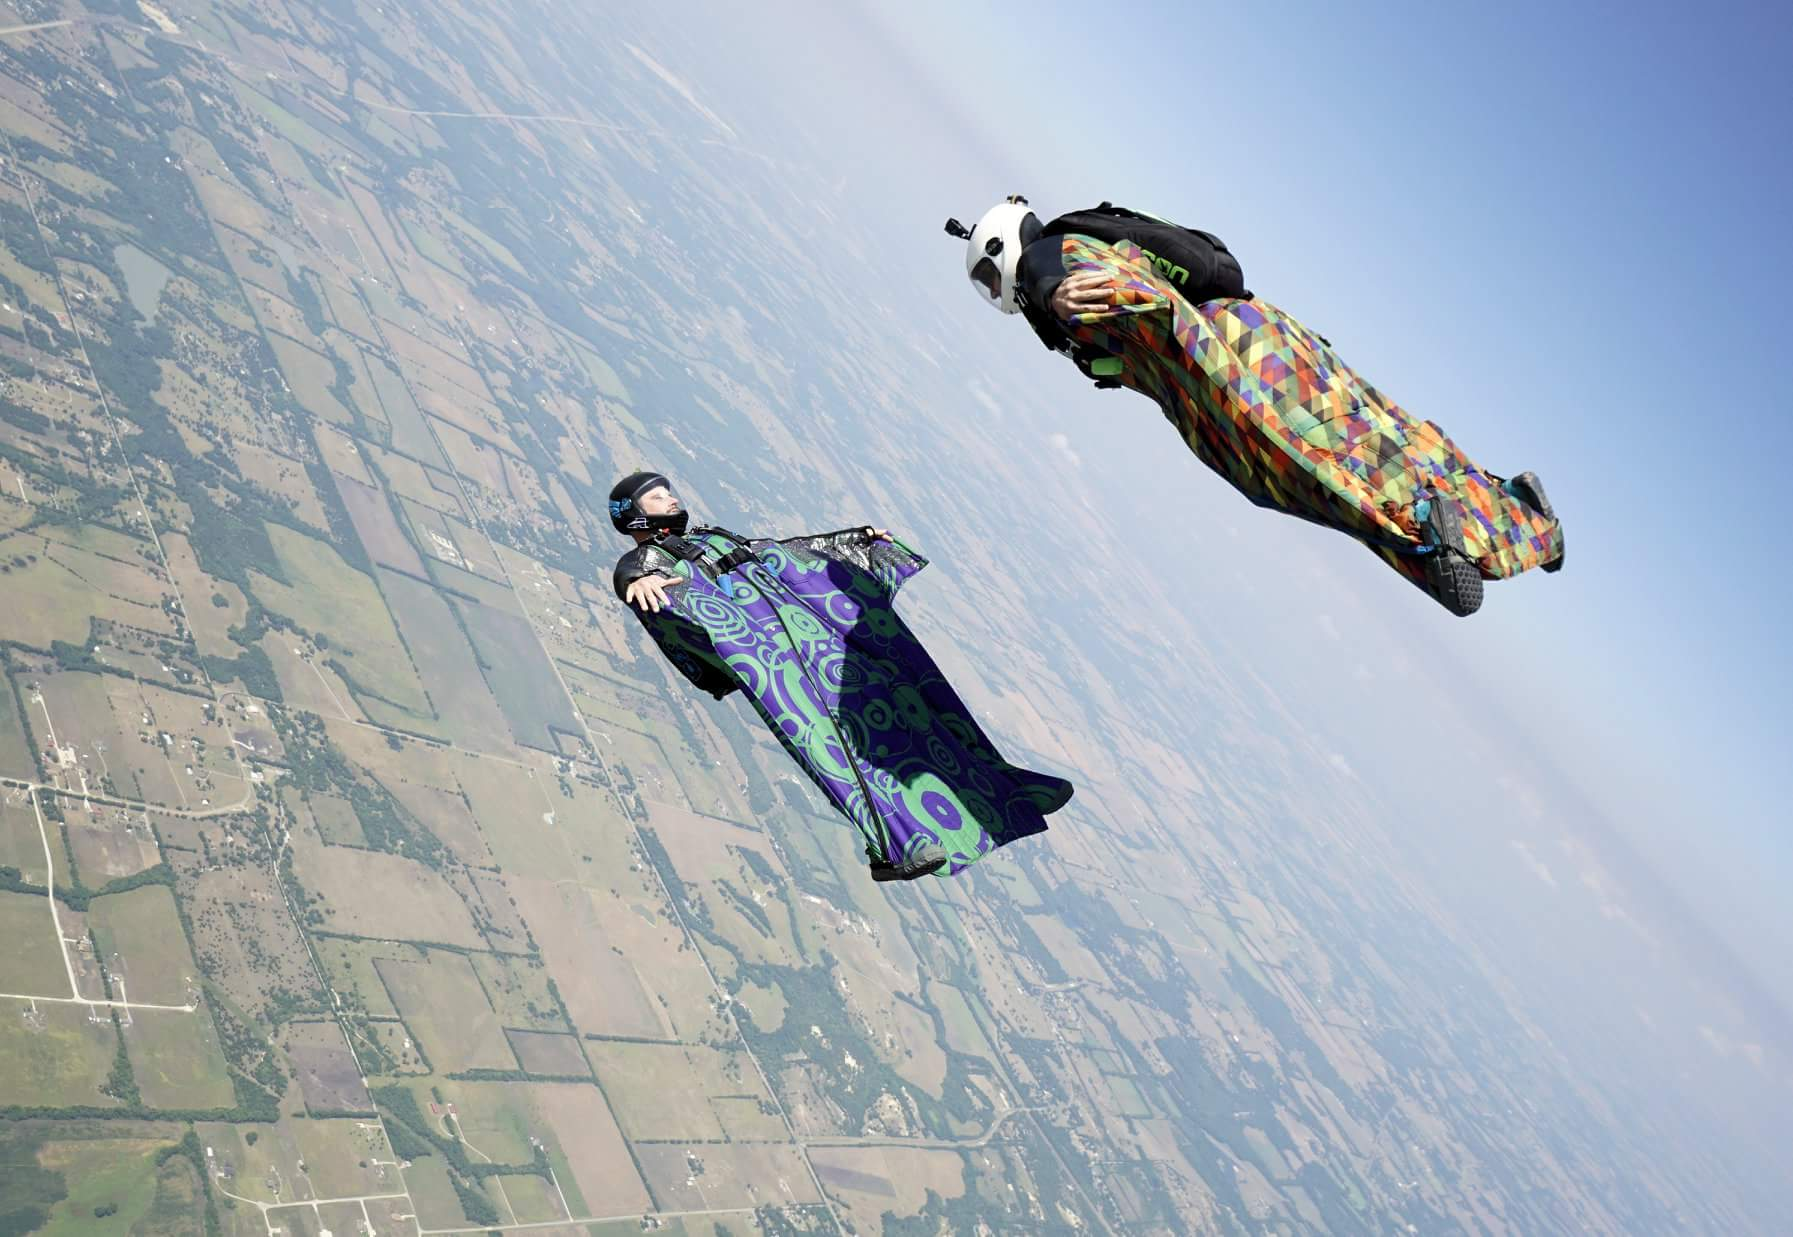 Luke Rogers wingsuit photo by John Cotney